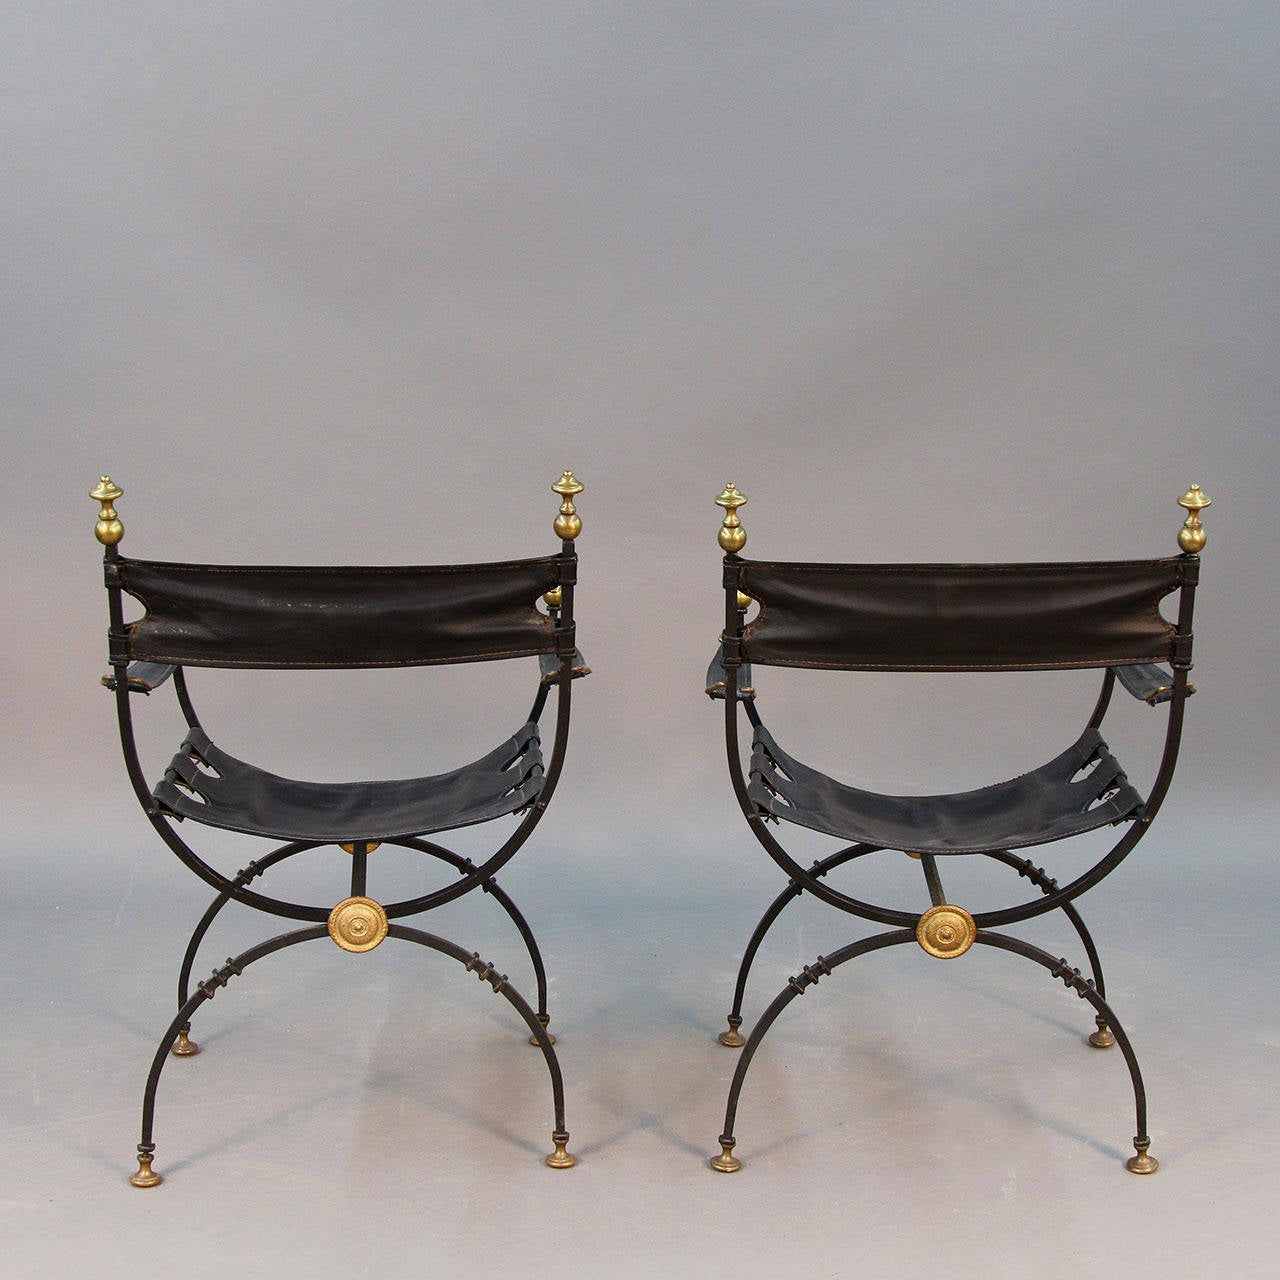 Pair Of Iron And Brass Campaign Chairs At 1stdibs